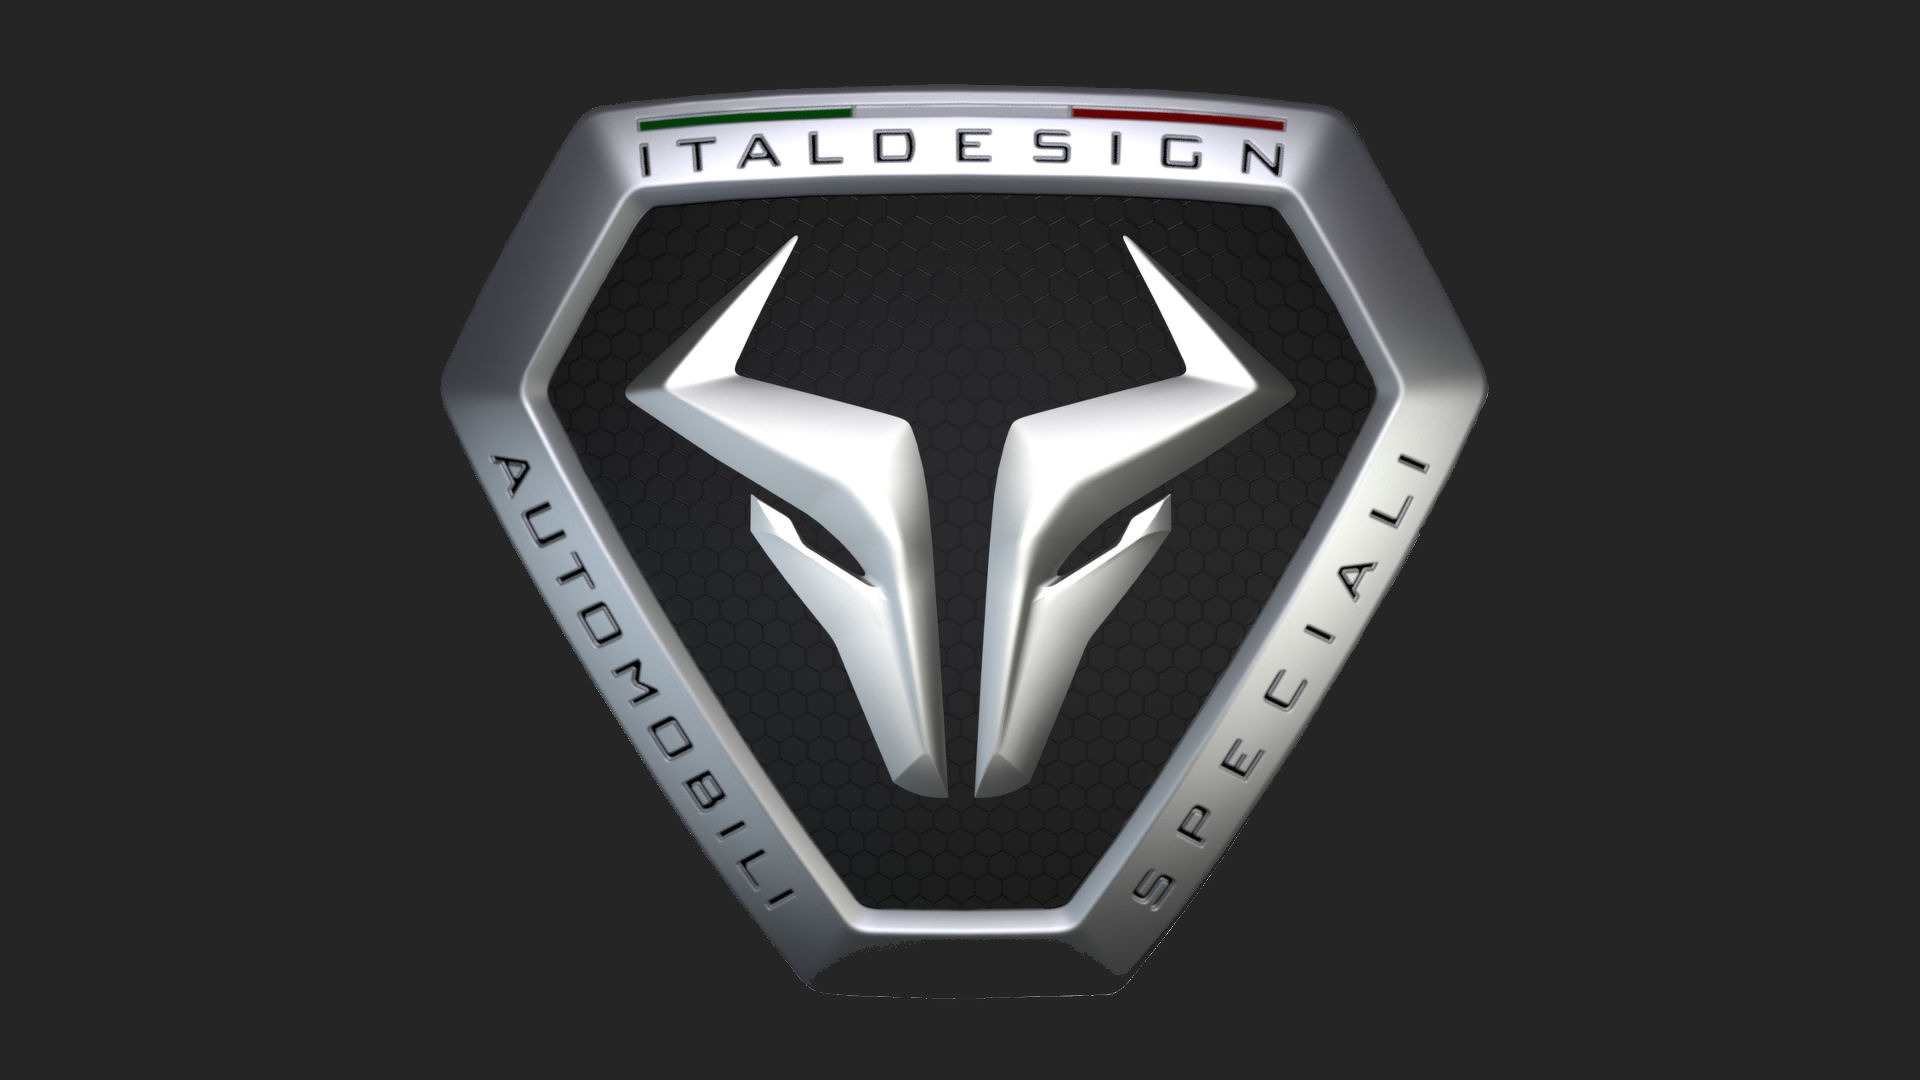 italdesign announces new brand dedicated to ultralimited